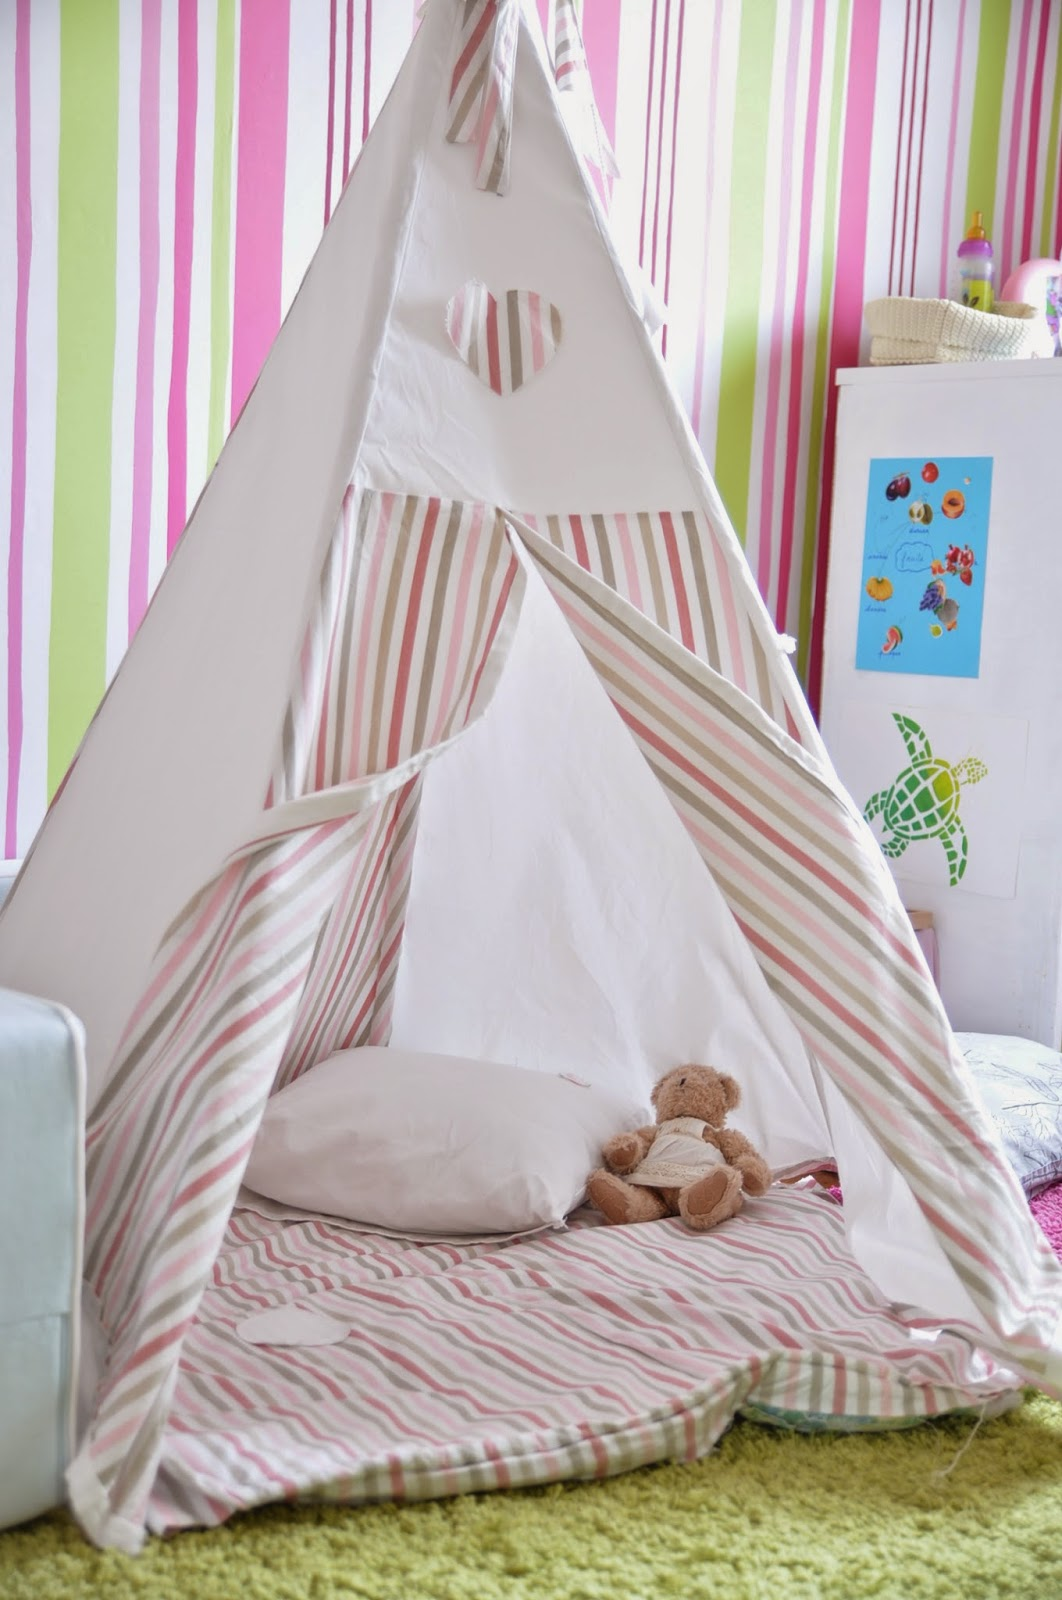 delightful tipi enfant pas cher 10 chez nous 4 jpg. Black Bedroom Furniture Sets. Home Design Ideas